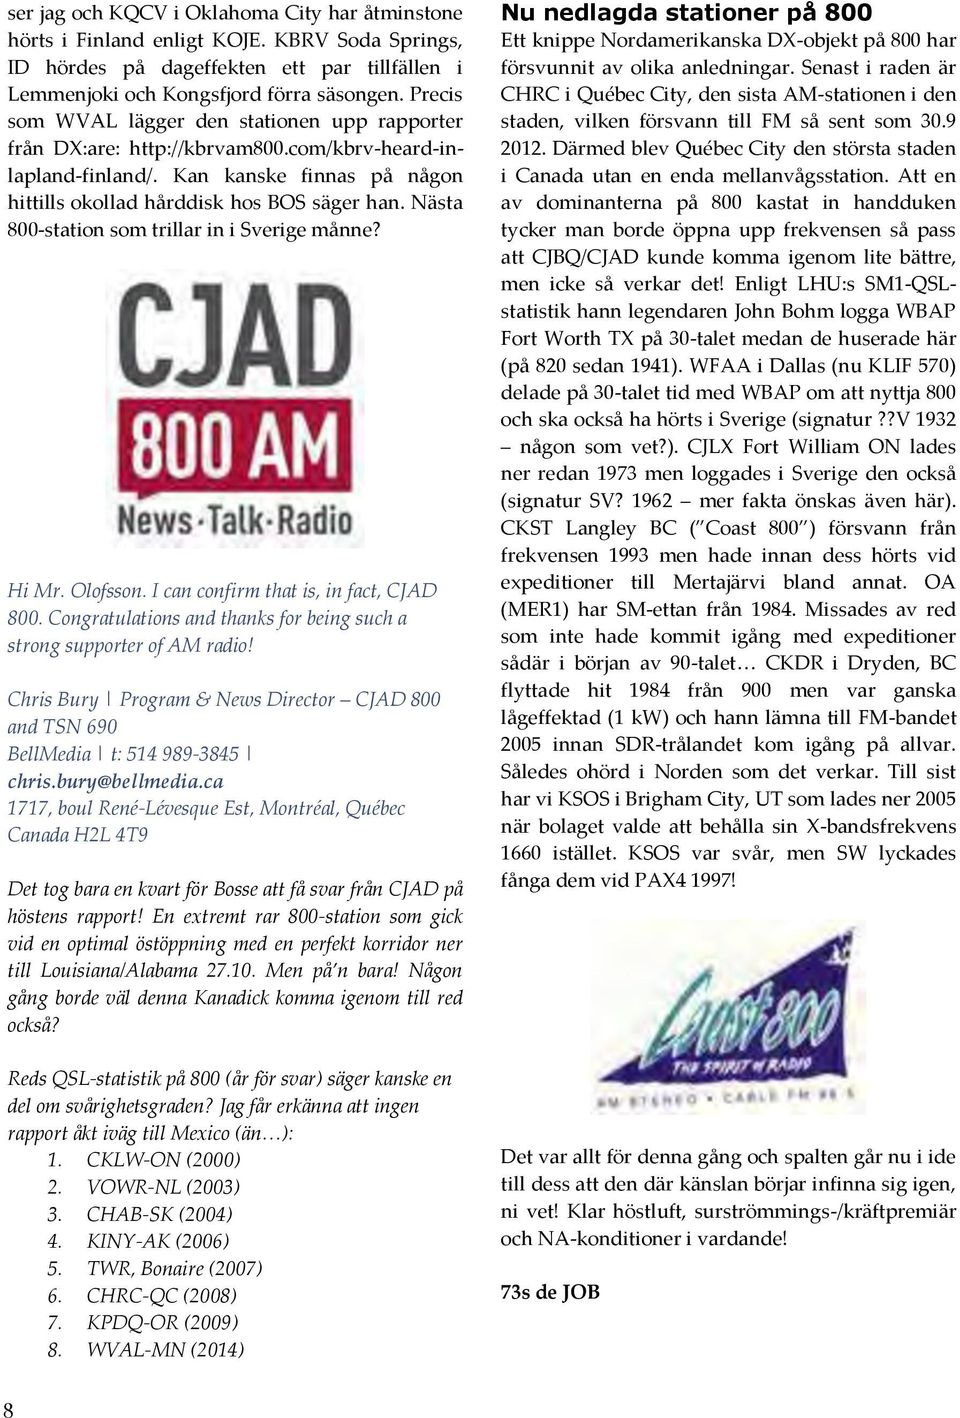 Nästa 800-station som trillar in i Sverige månne? Hi Mr. Olofsson. I can confirm that is, in fact, CJAD 800. Congratulations and thanks for being such a strong supporter of AM radio!